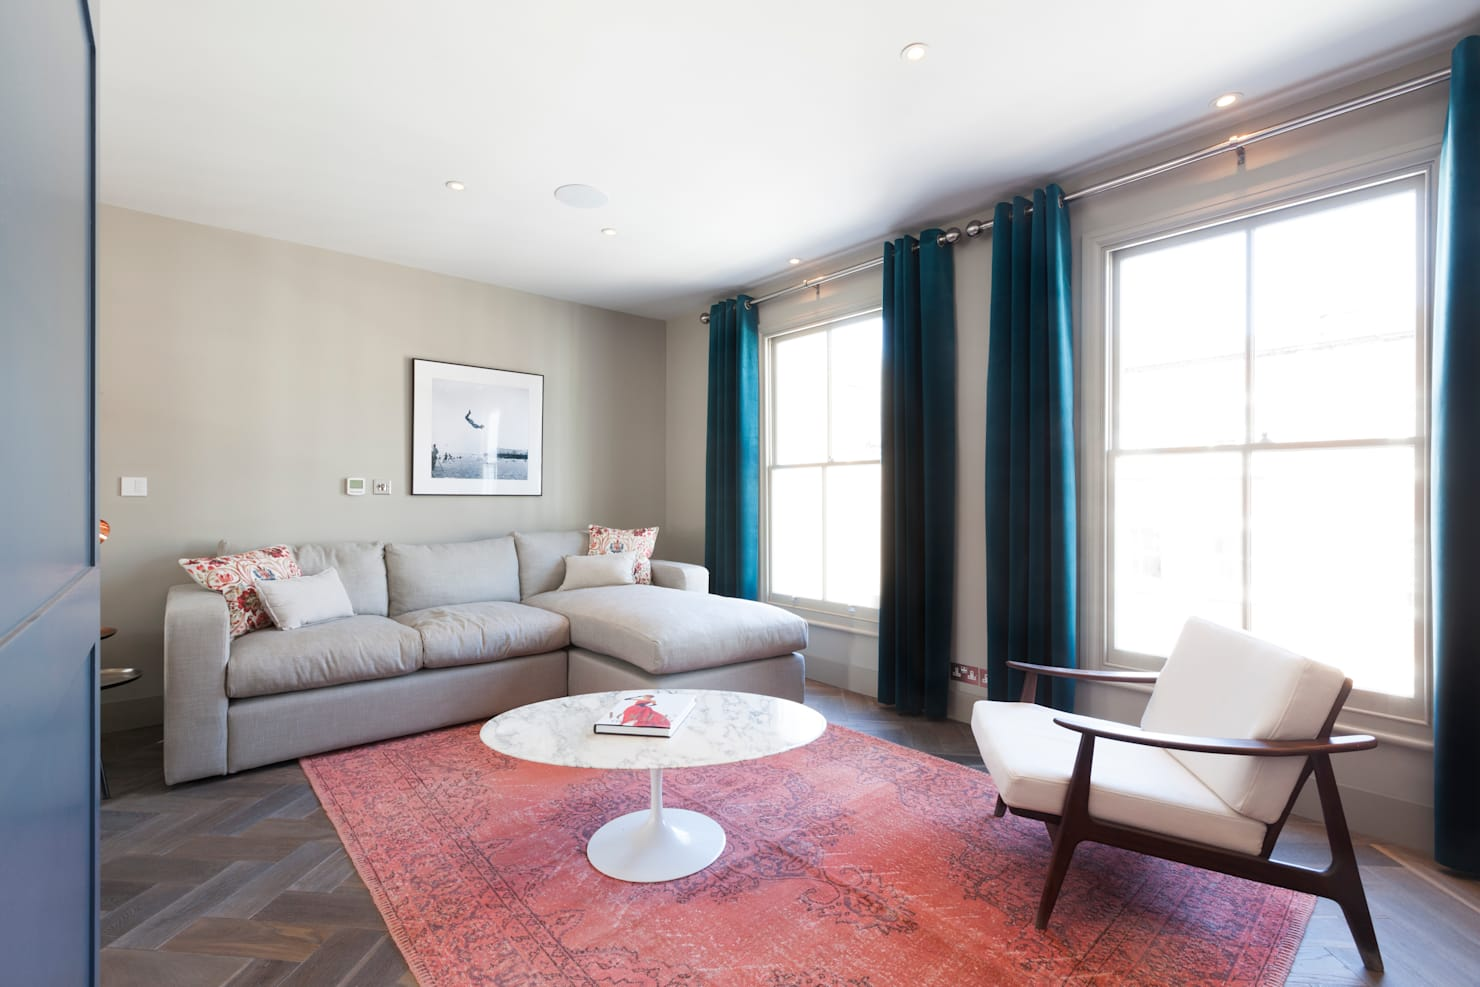 This London apartment is full of chic modernity